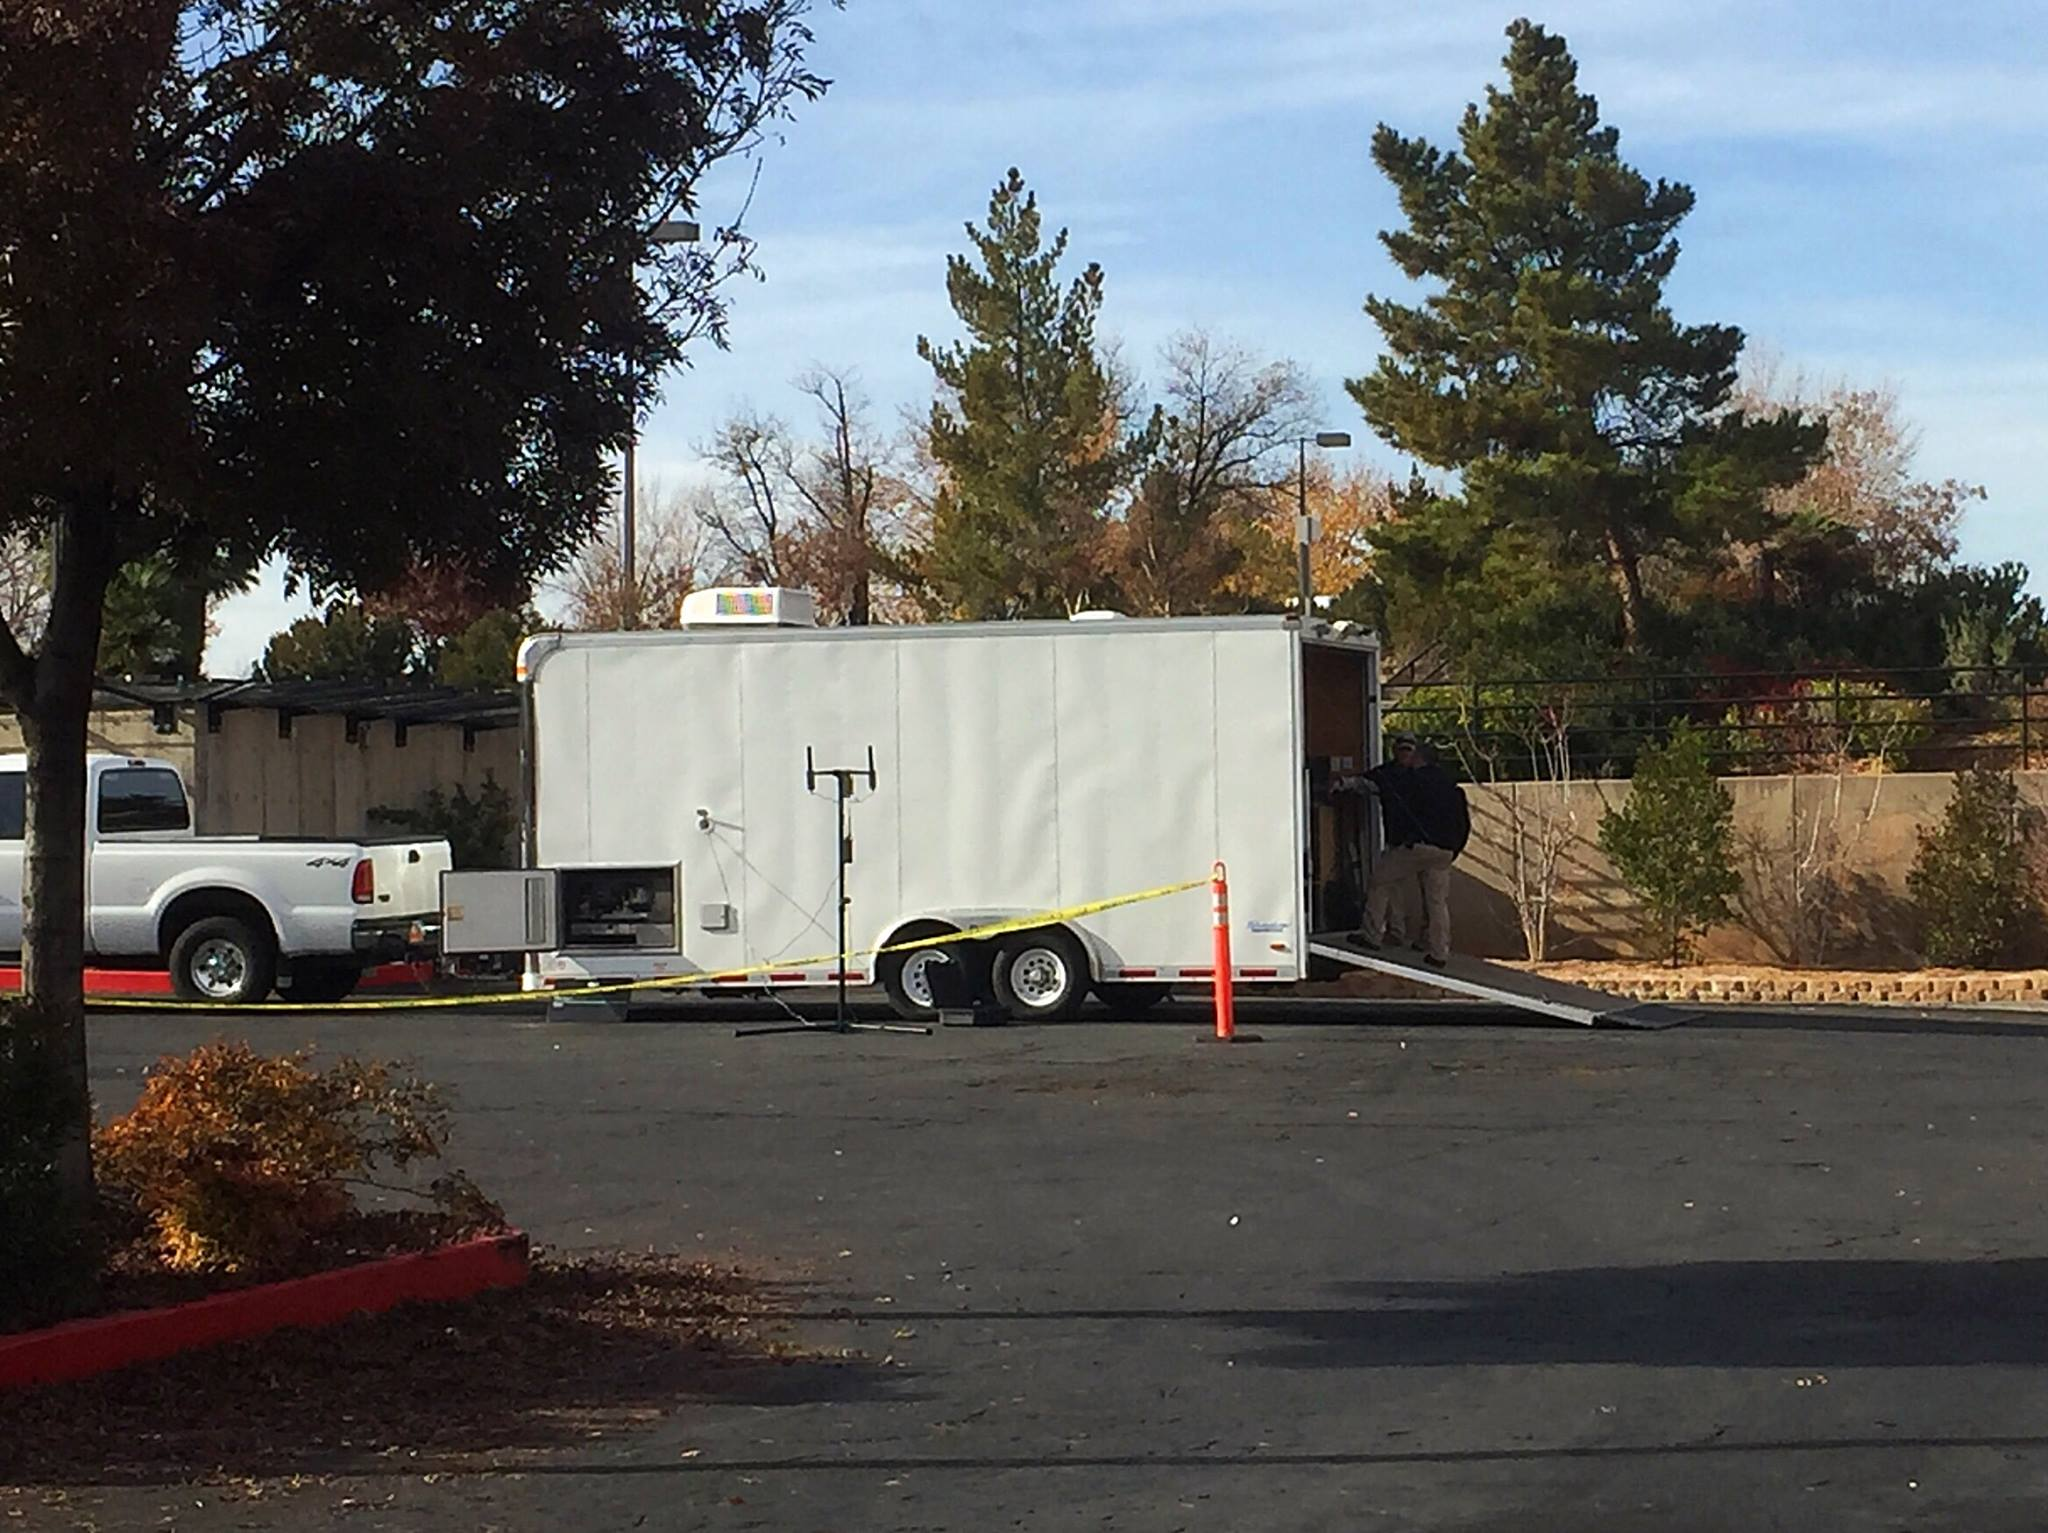 """Dixie Regional Medical Center teamed up with the St. George Police Department and Southern Utah Bomb Squad to participate in a bomb threat emergency drill that included a mock scenario involving a """"suspicious package"""" found on hospital grounds, St. George, Utah, Dec. 14, 2016   Photo by Kimberly Scott, St. George News"""